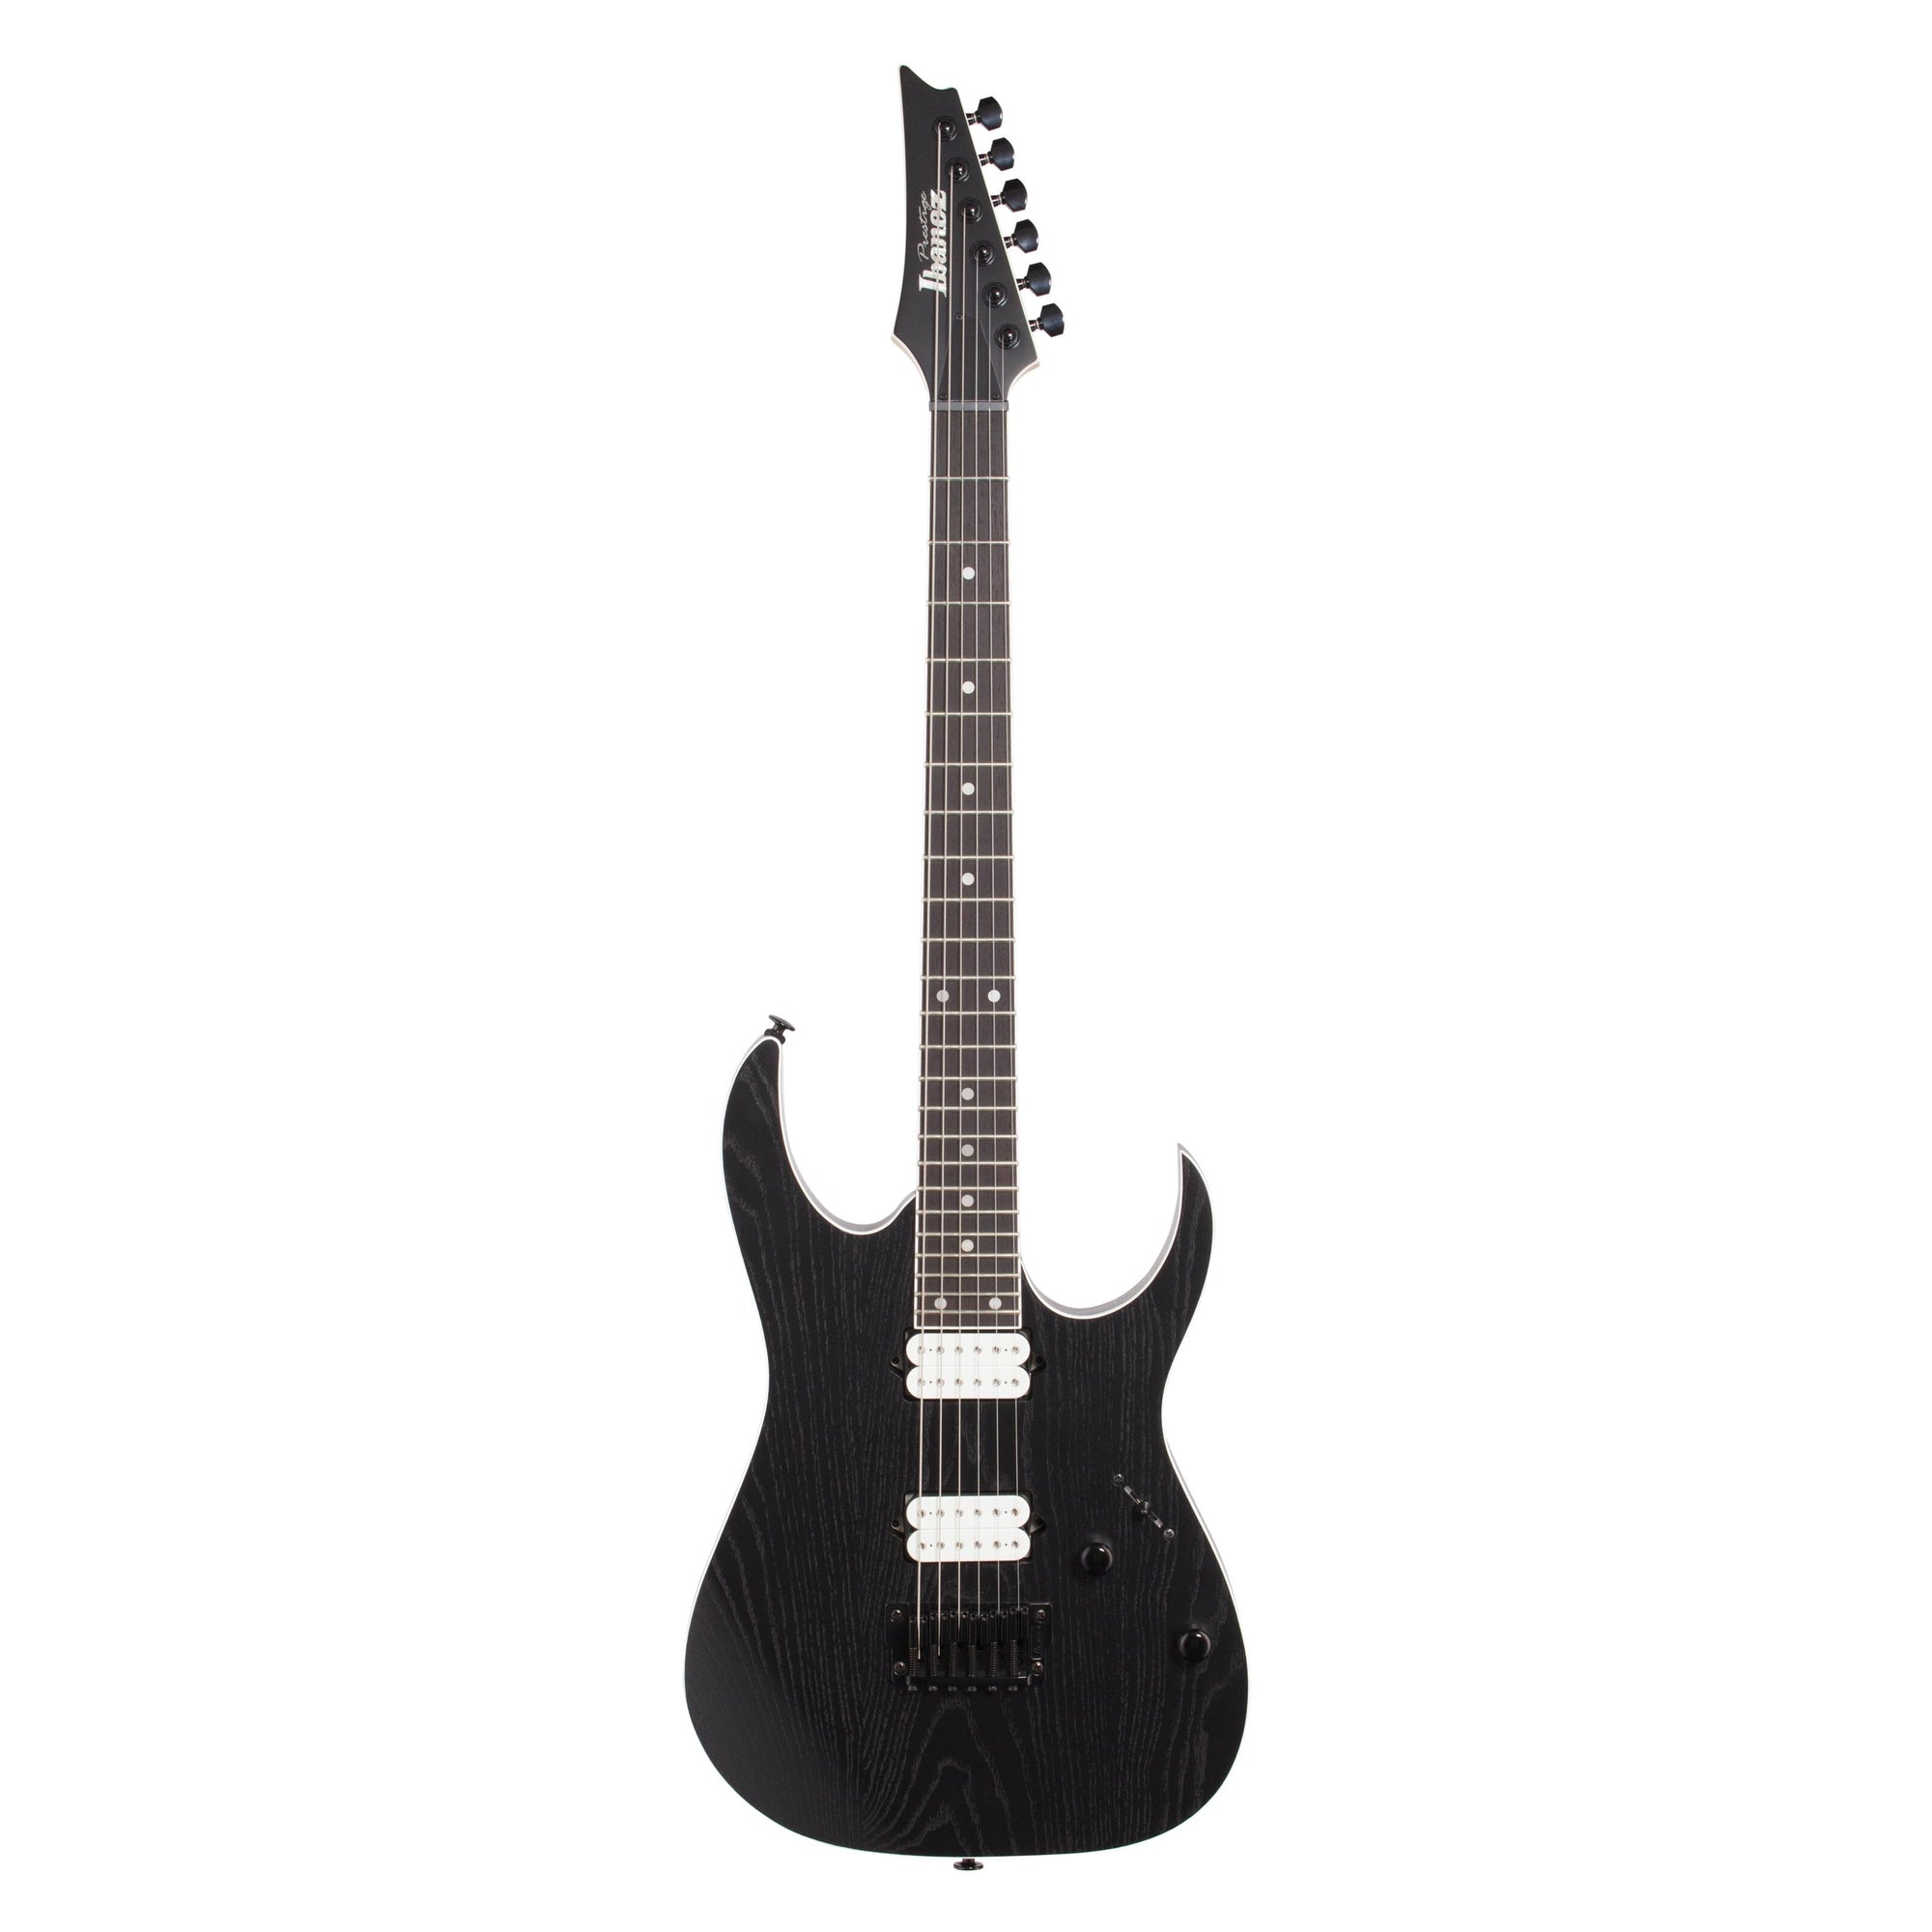 Ibanez RGR652AHBF Prestige Electric Guitar (with Case), Weathered Black